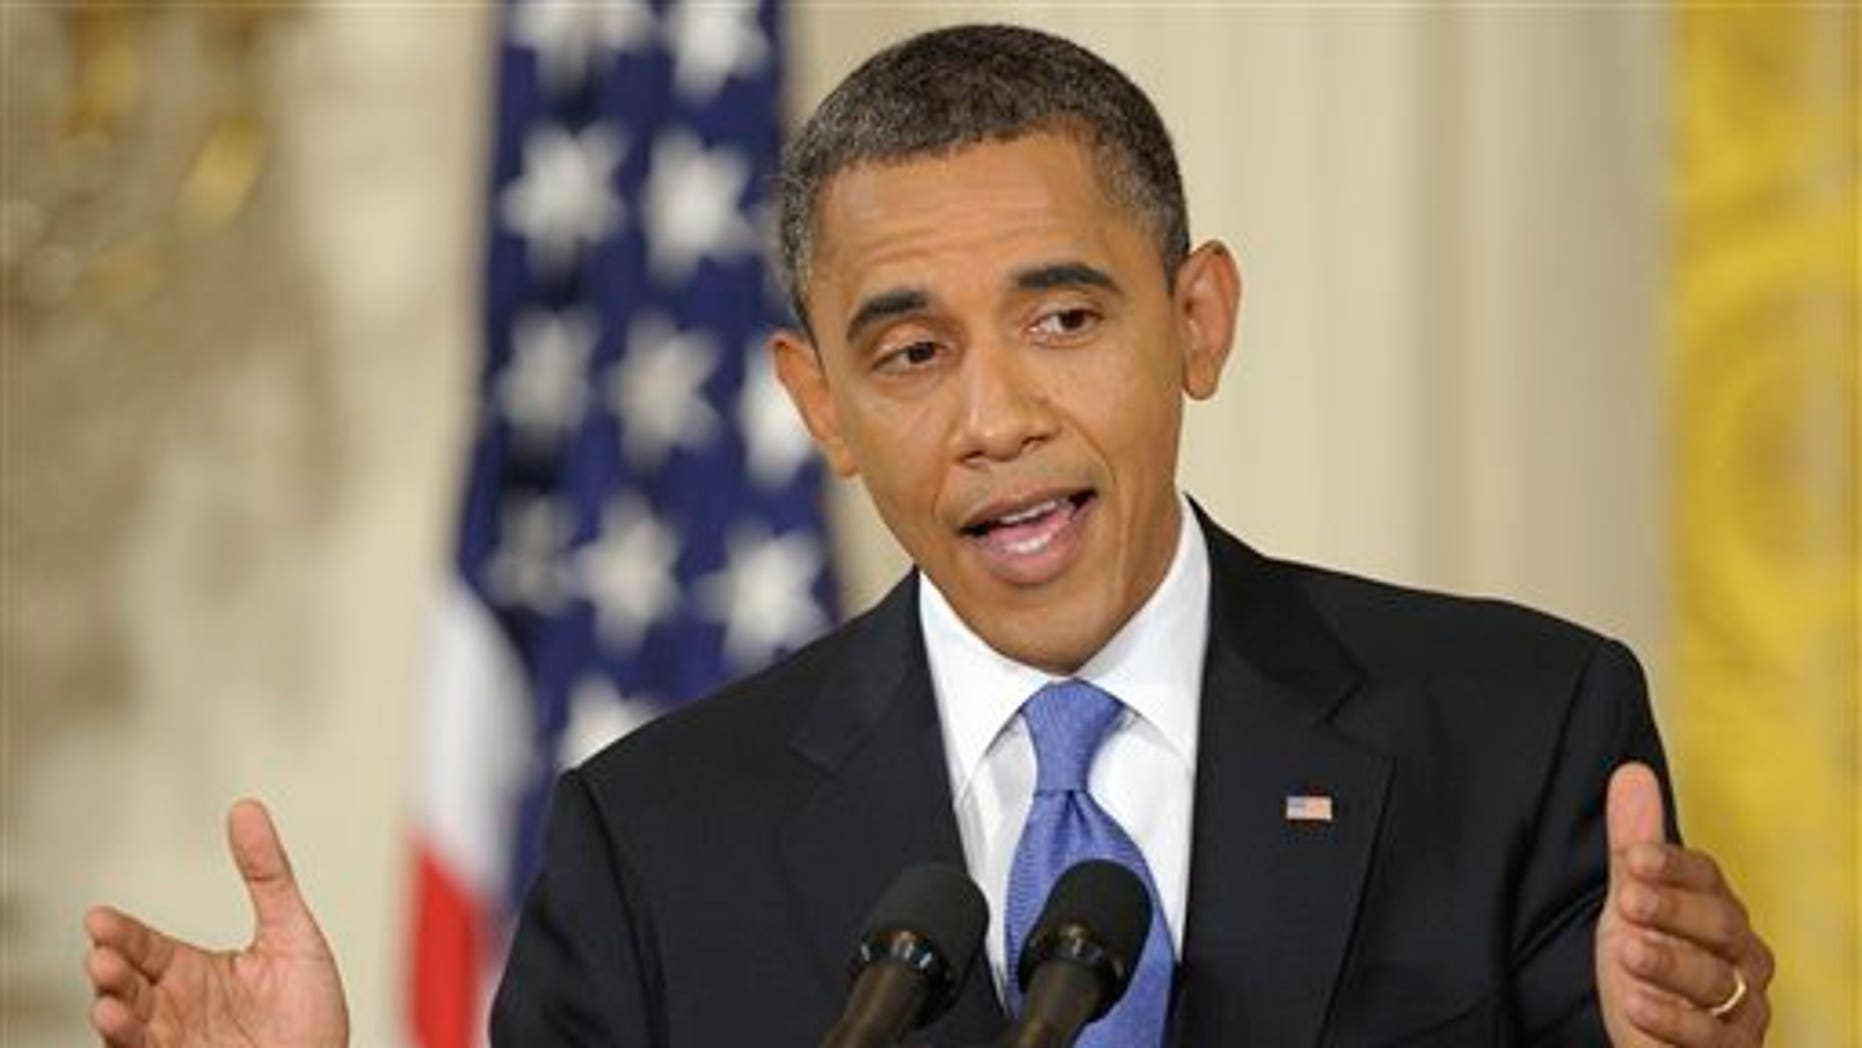 Oct. 6: President Barack Obama gestures during a news conference in the East Room of the White House in Washington.